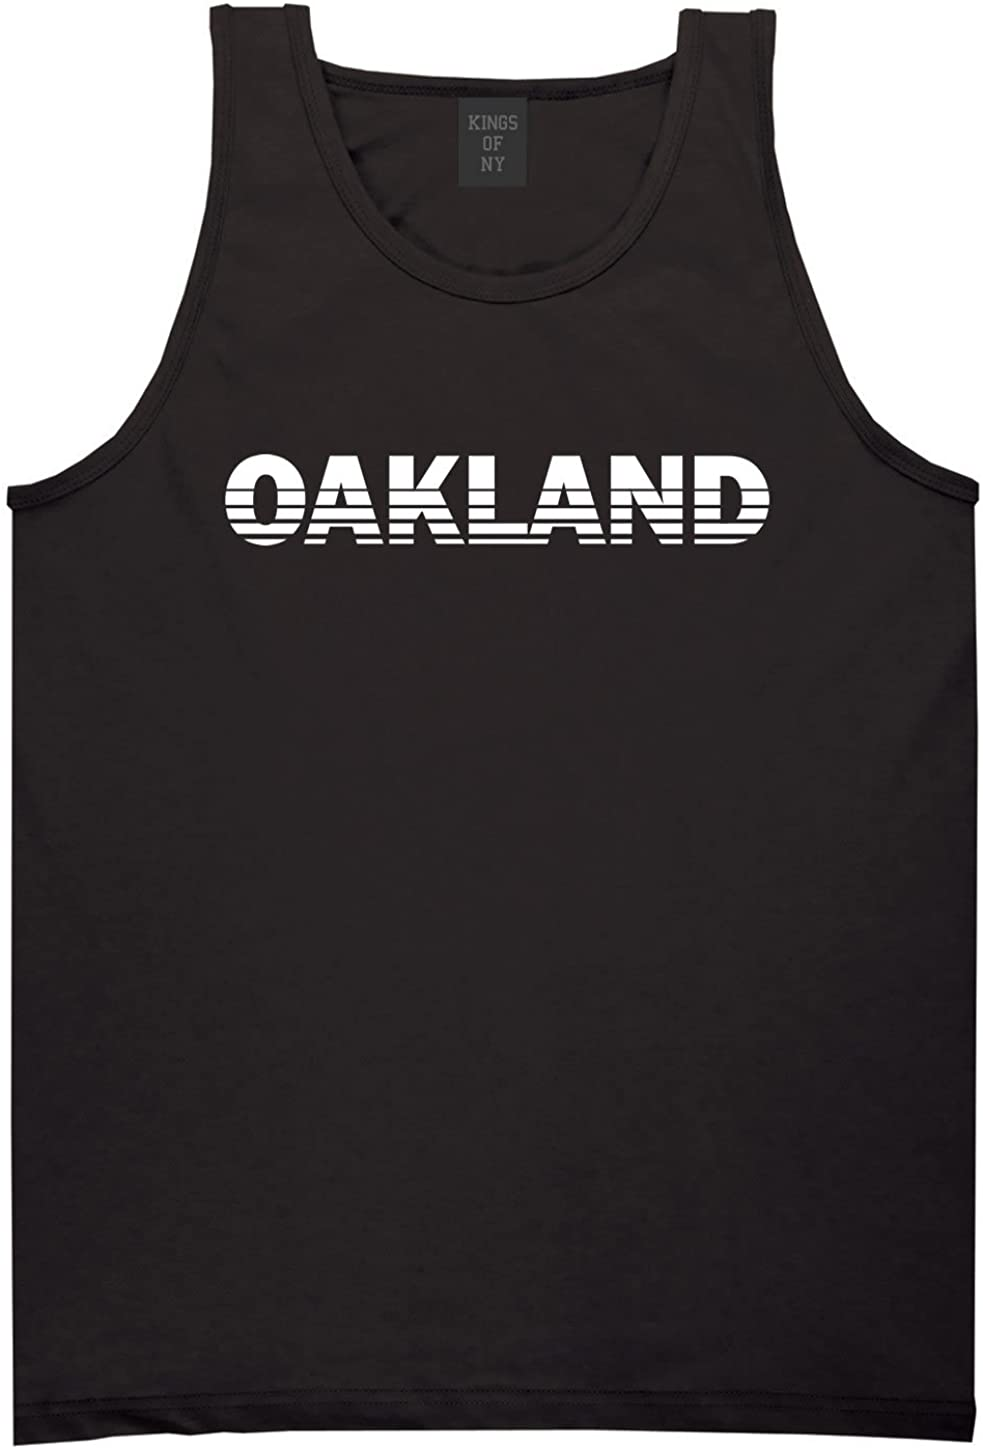 Oakland California State City Tank Top T-Shirt